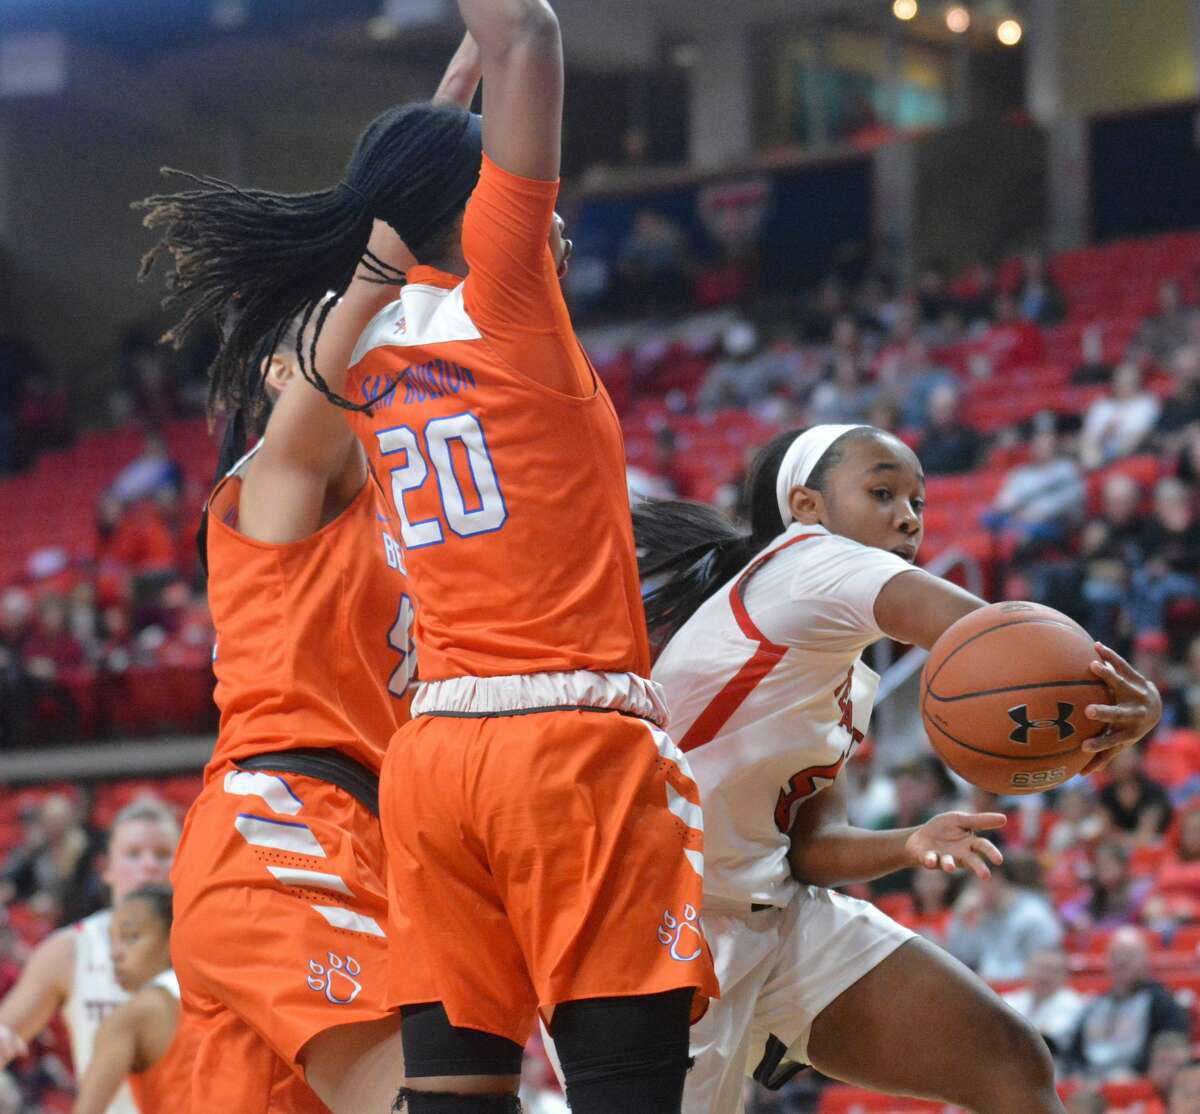 Texas Tech's Jo'Nah Johnson scoops a pass around Sam Houston State defenders La'Sha Haynes (20) and Kiera McKinney during their NCAA women's basketball game on Thursday in the United Supermarkets Arena.